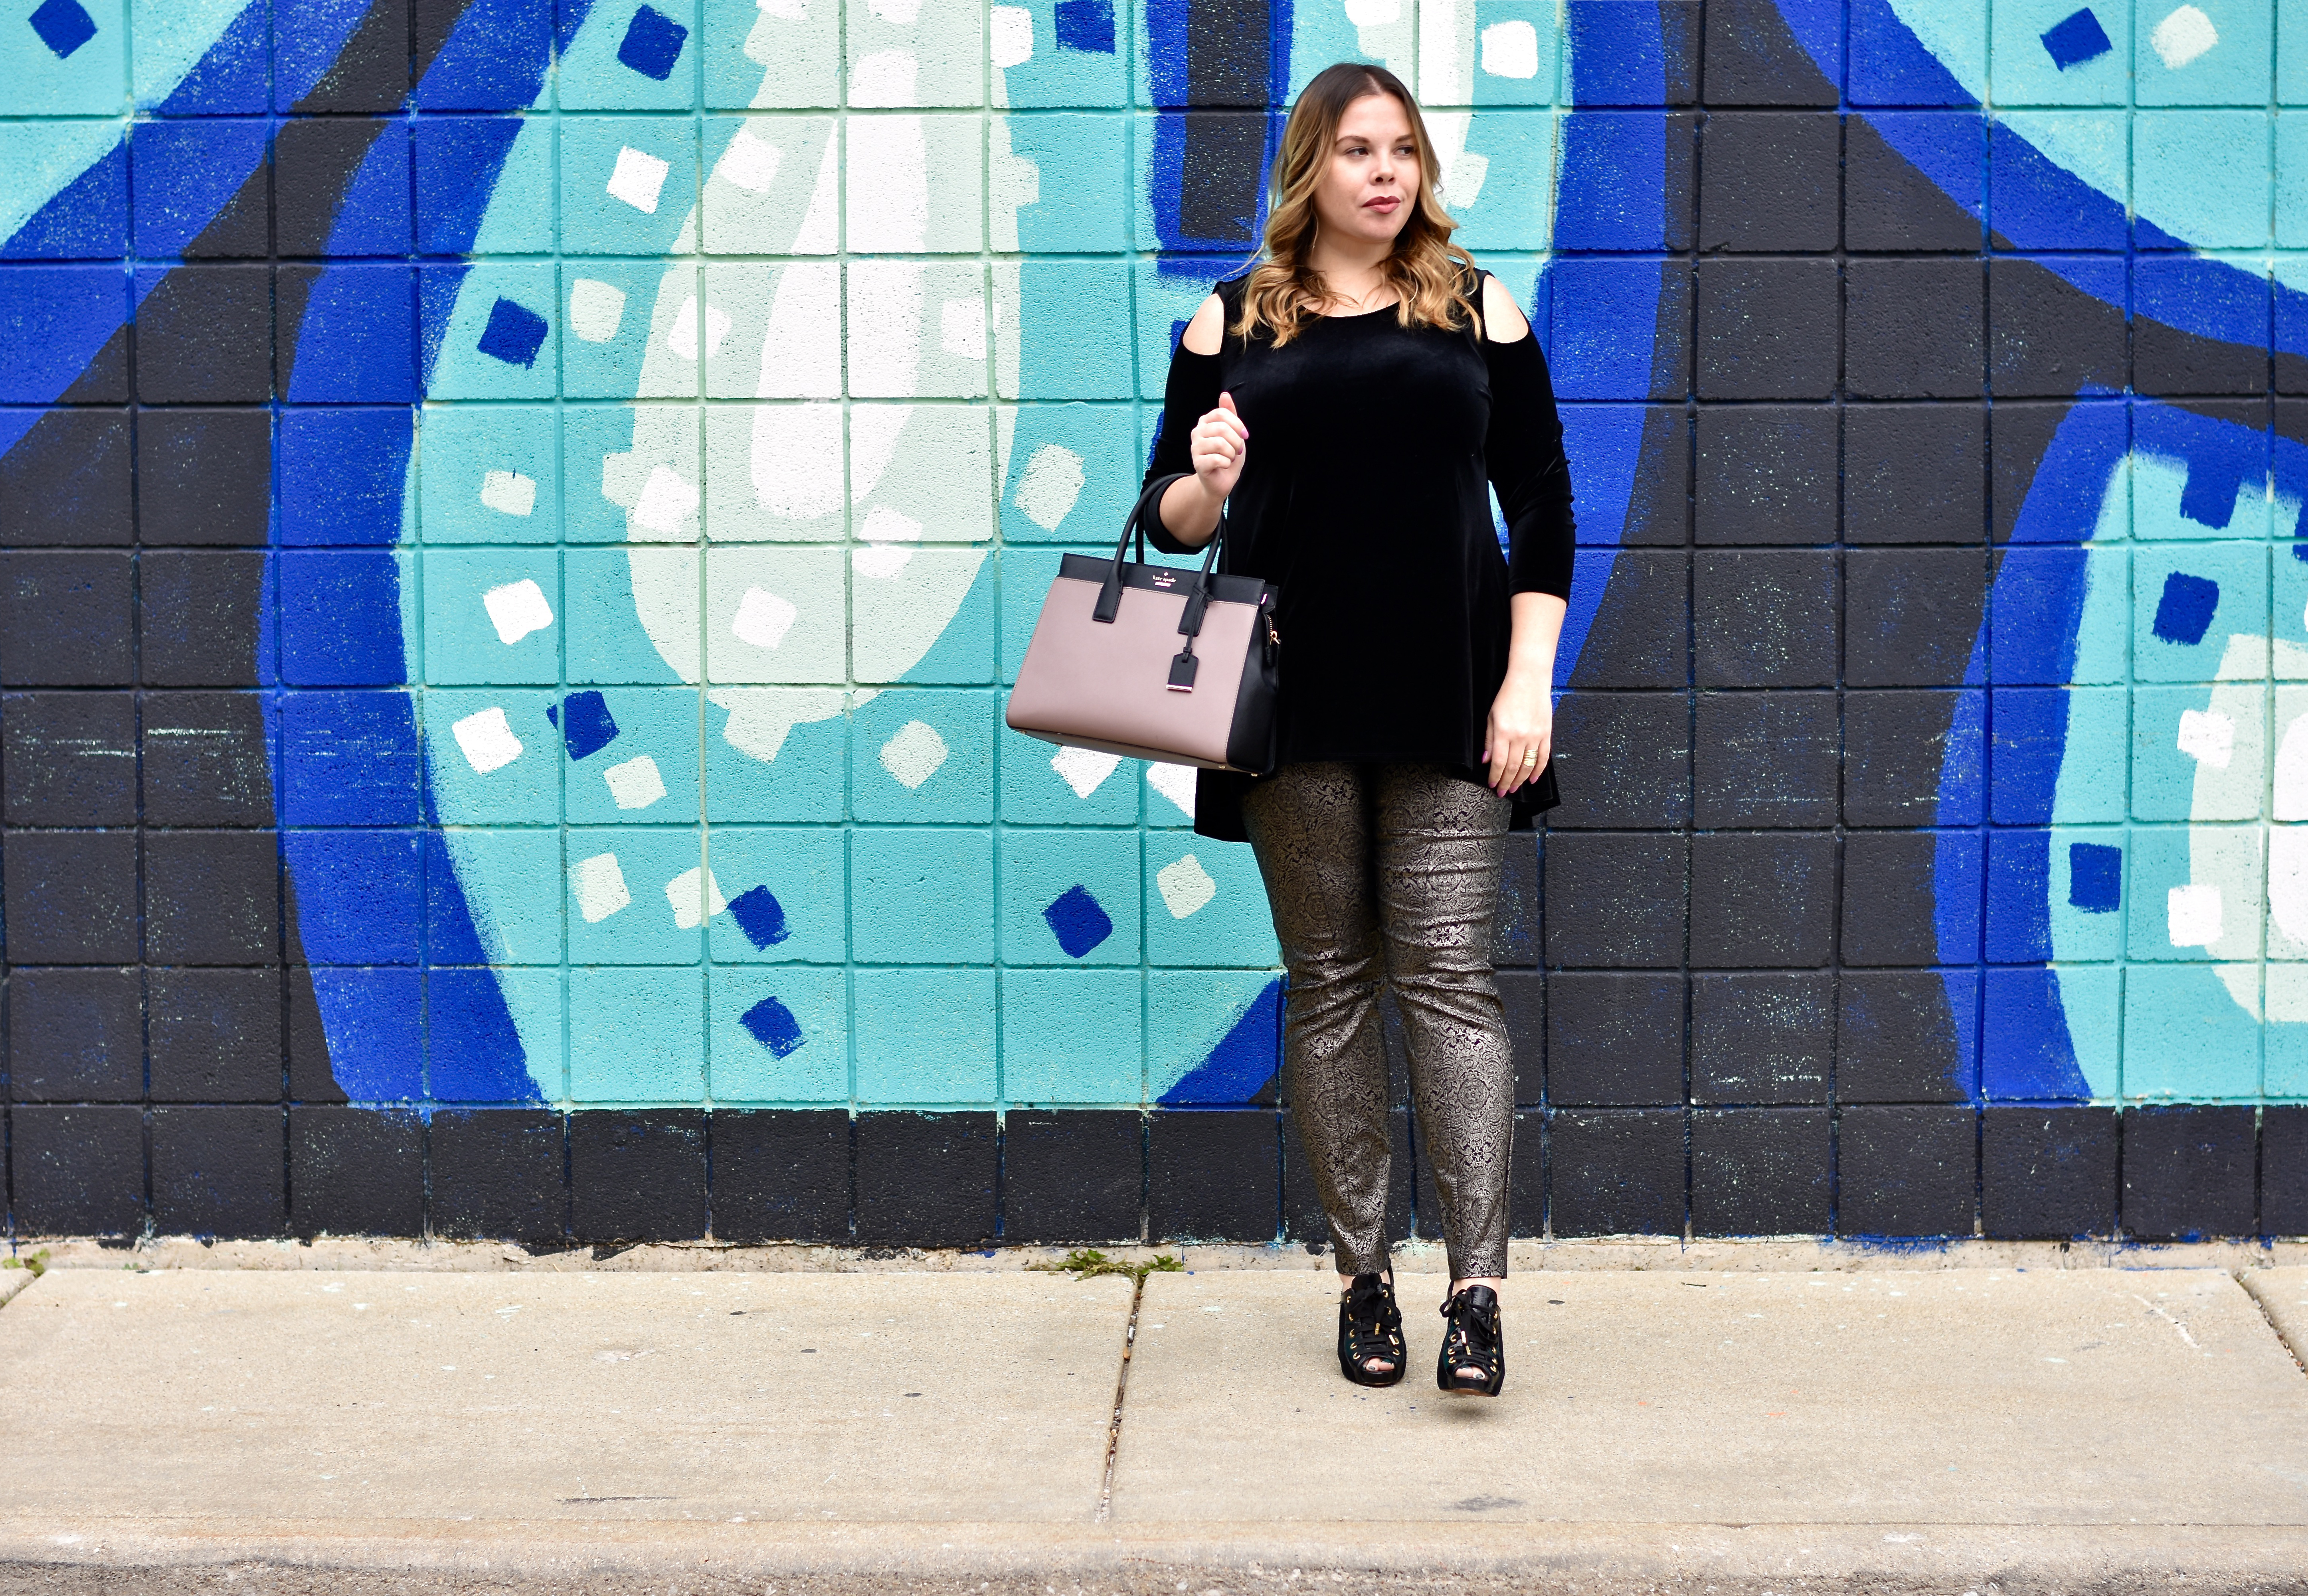 workwear wednesday: holiday party 4